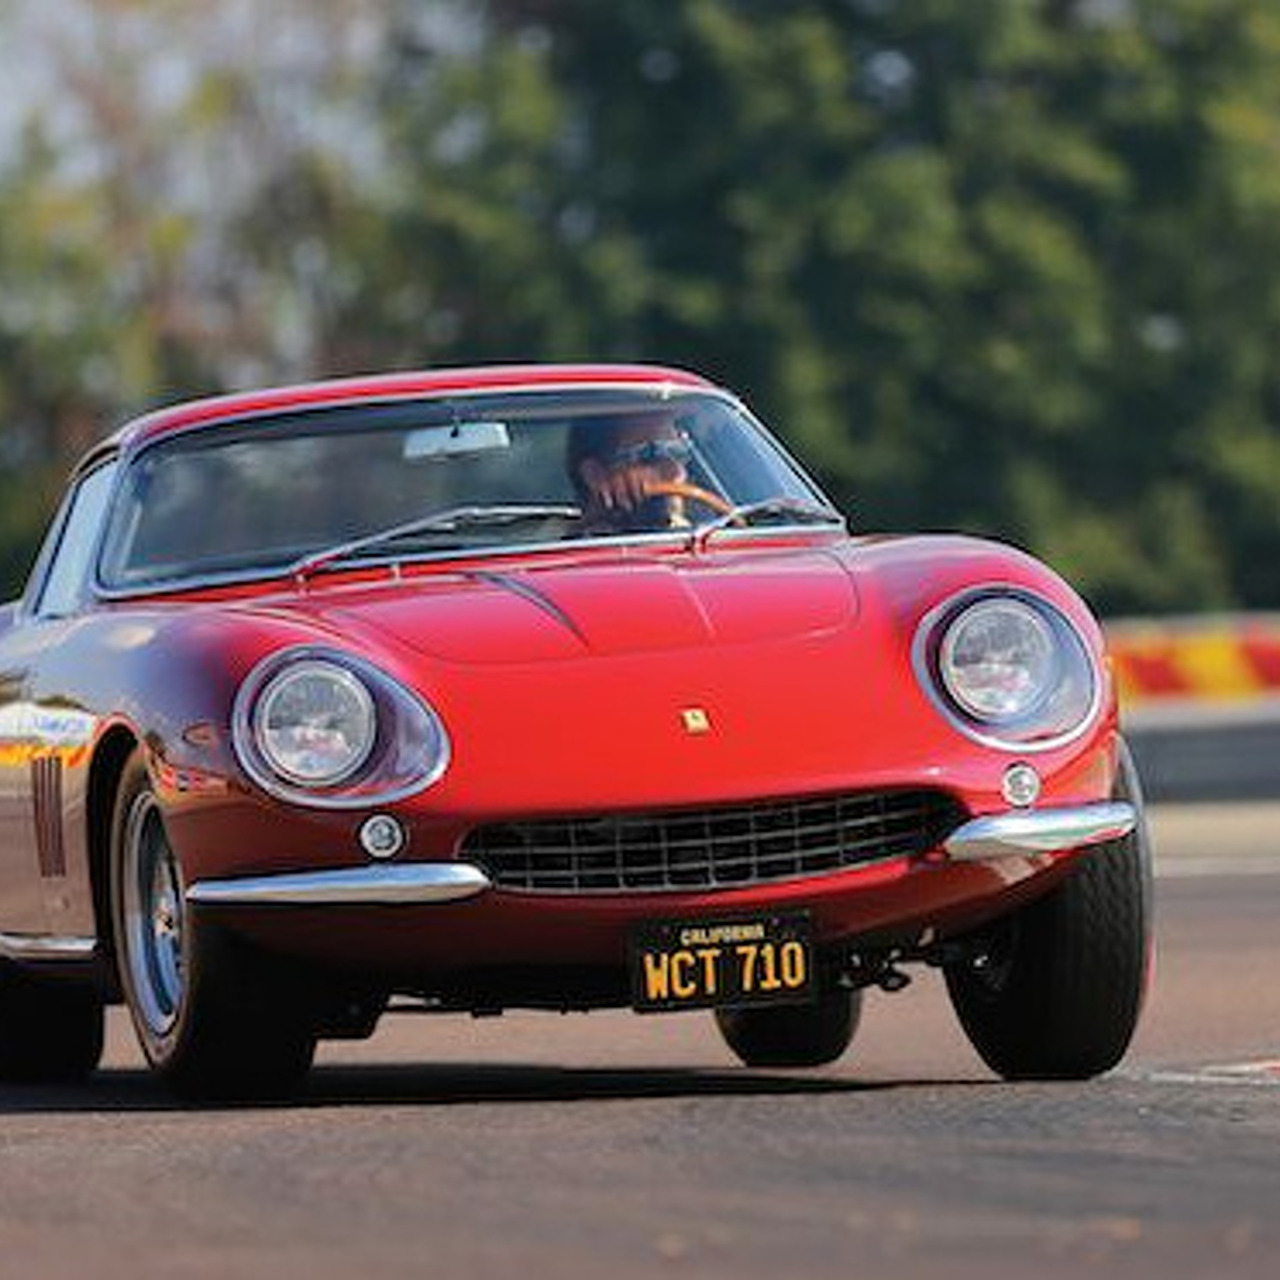 Steve McQueen's Ferrari Poised to Break Records at Monterey Auction